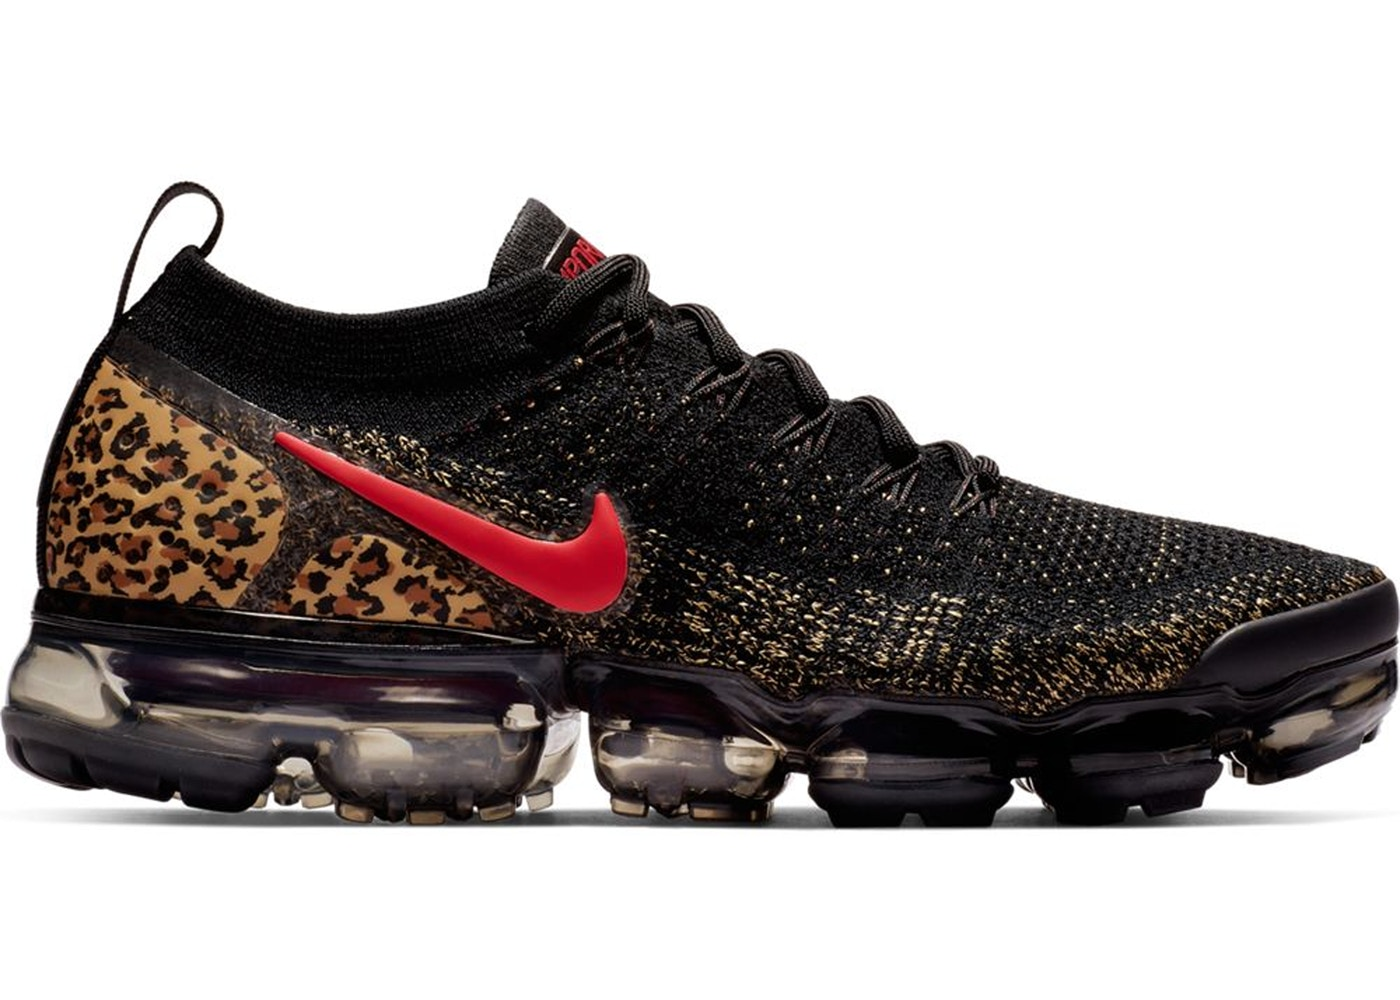 85eca59aab34 Buy Air Max VaporMax Shoes   Deadstock Sneakers